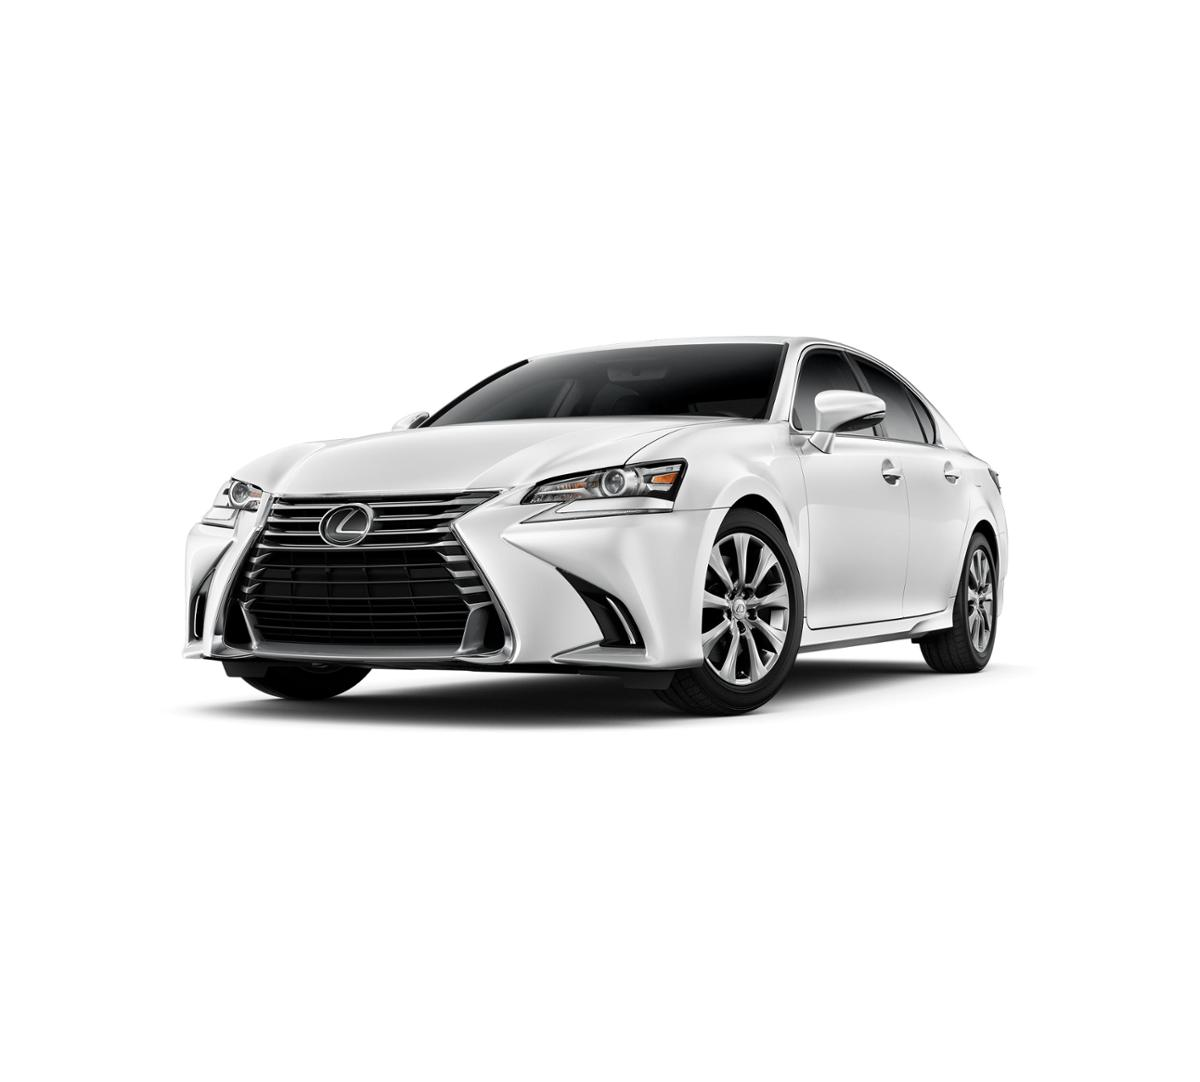 2017 Lexus GS Turbo Vehicle Photo in Dallas, TX 75209